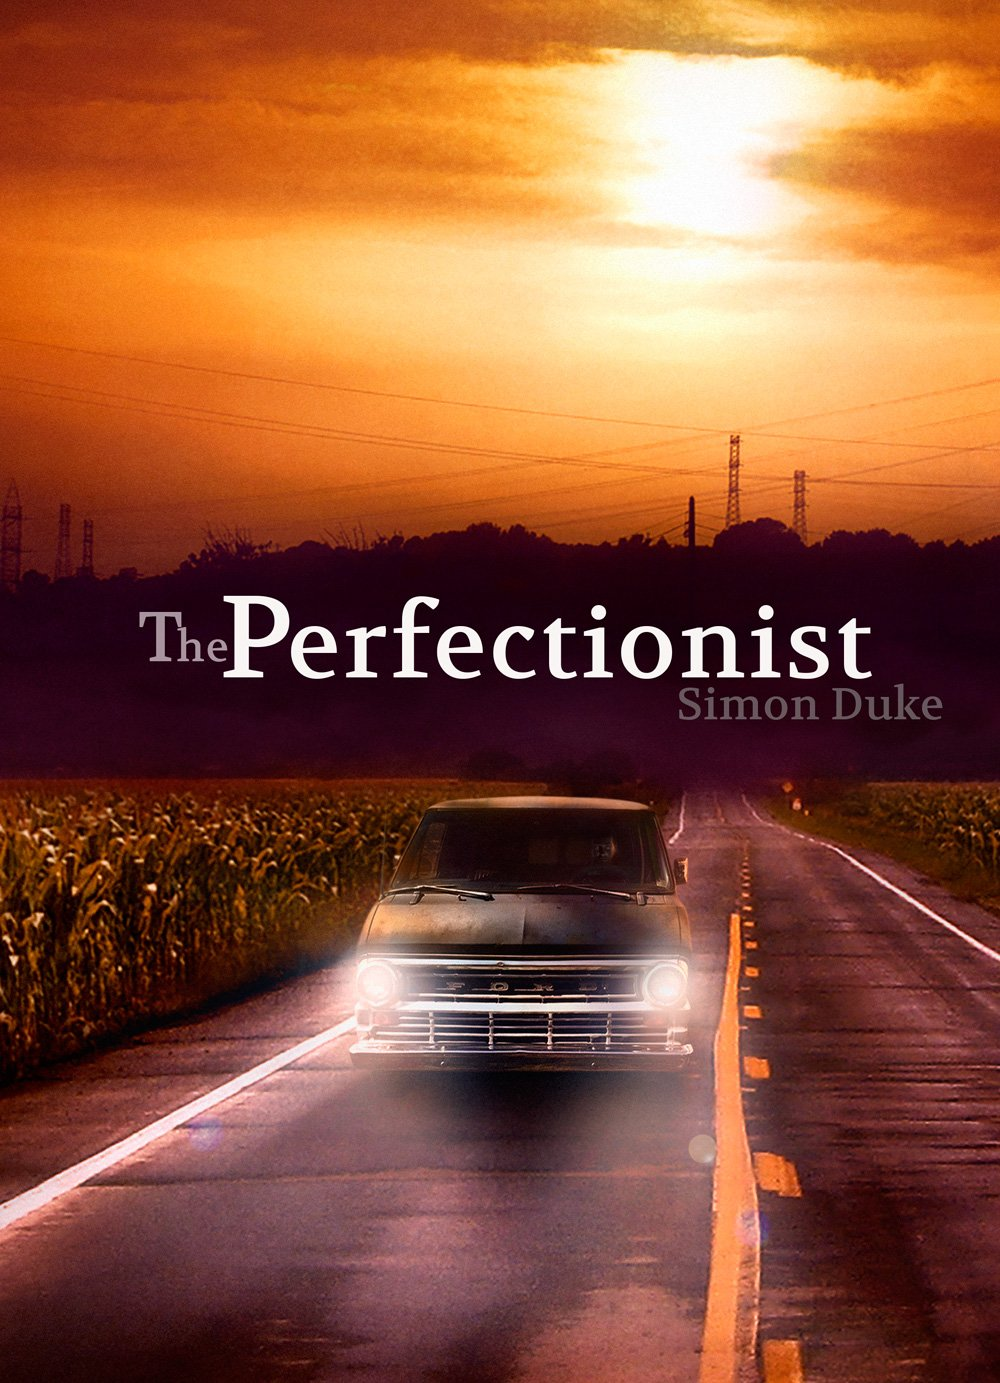 The Perfectionist by Simon Duke